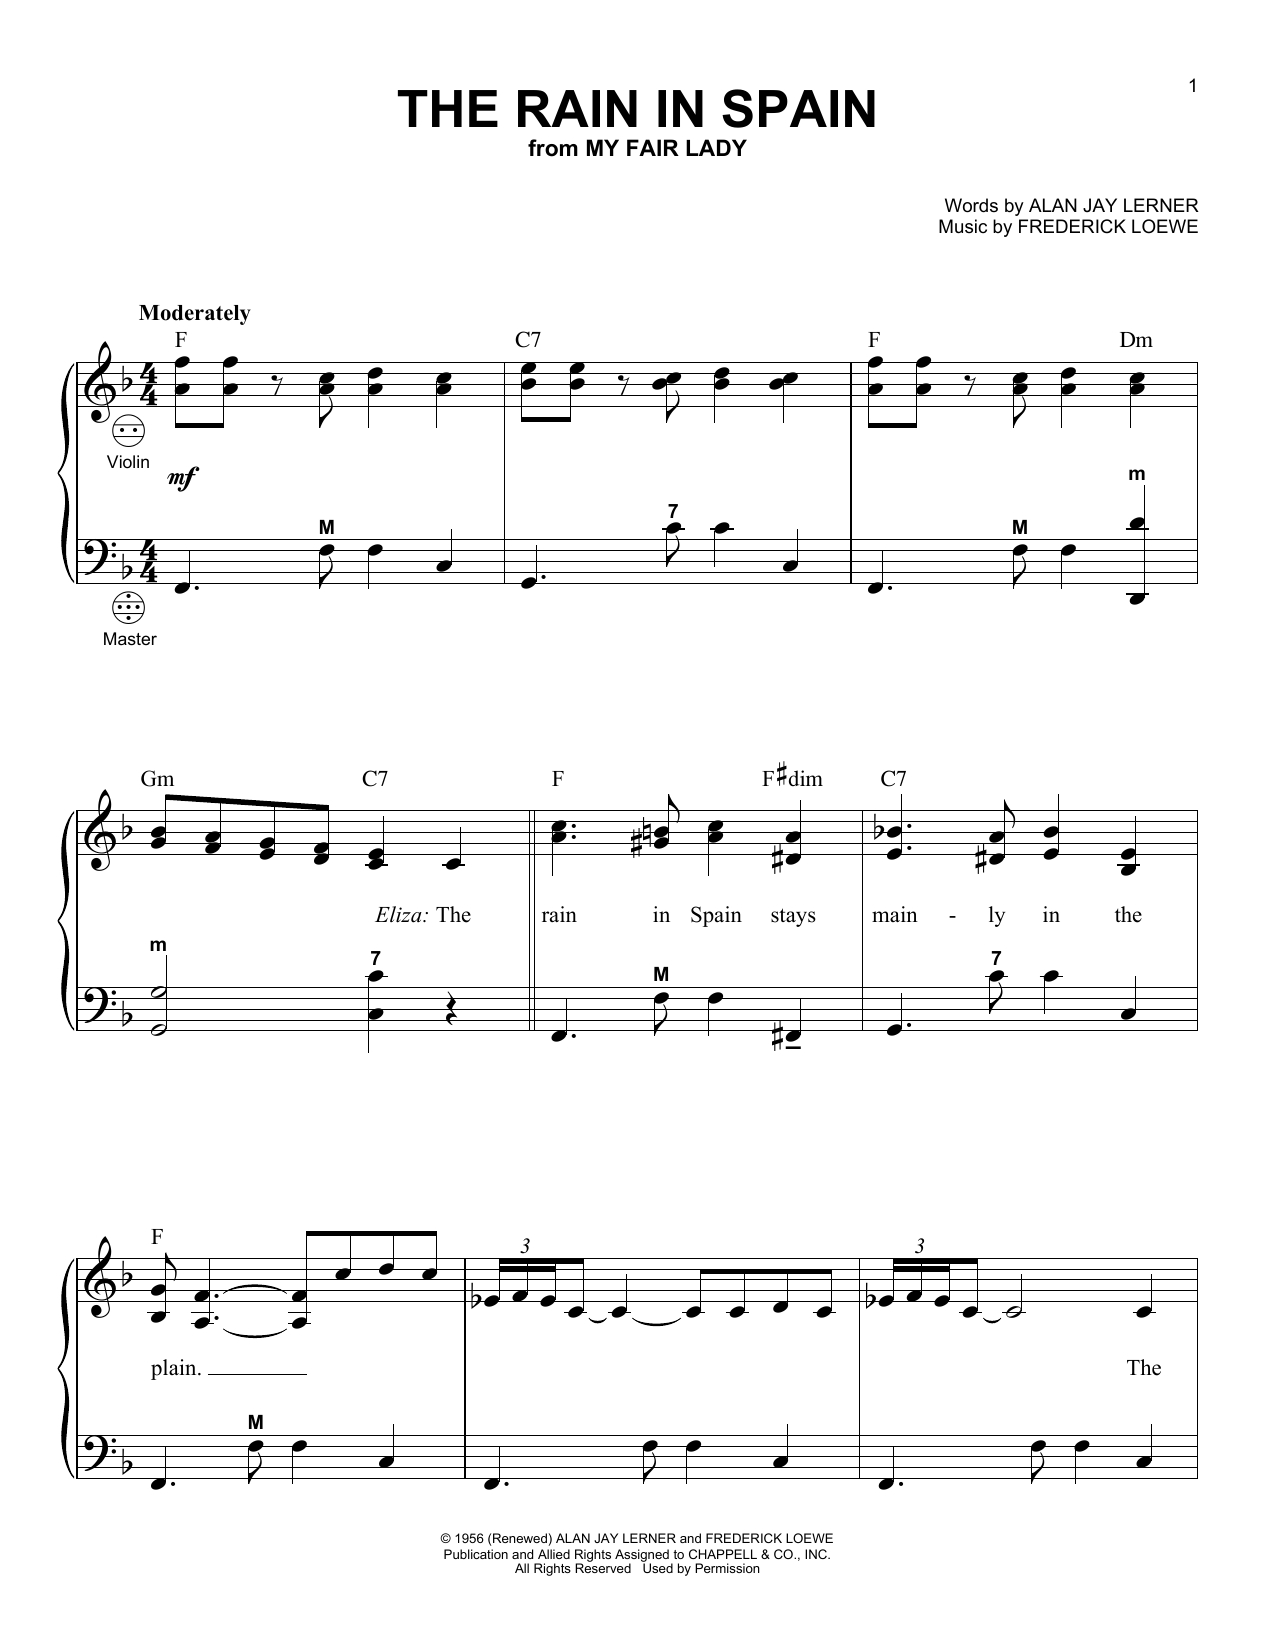 Your Great Name Chords Gary Meisner The Rain In Spain Sheet Music Notes Chords Download Printable Accordion Sku 158013